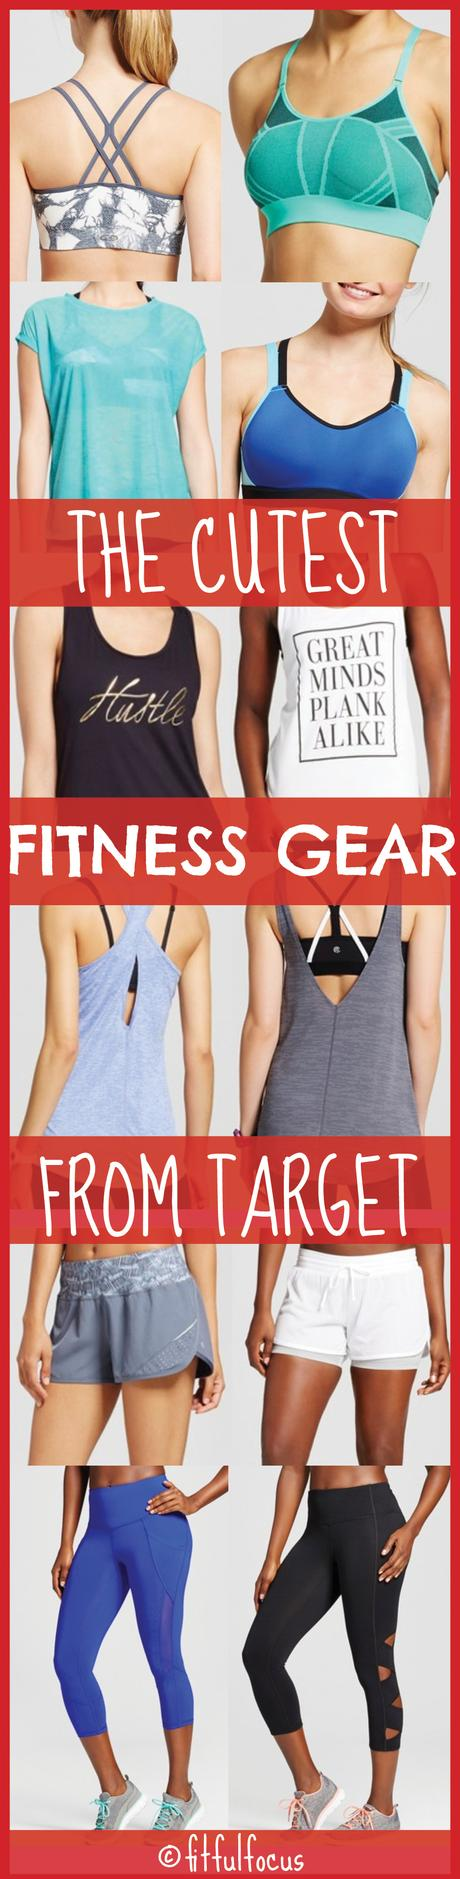 The Cutest Fitness Gear From Target